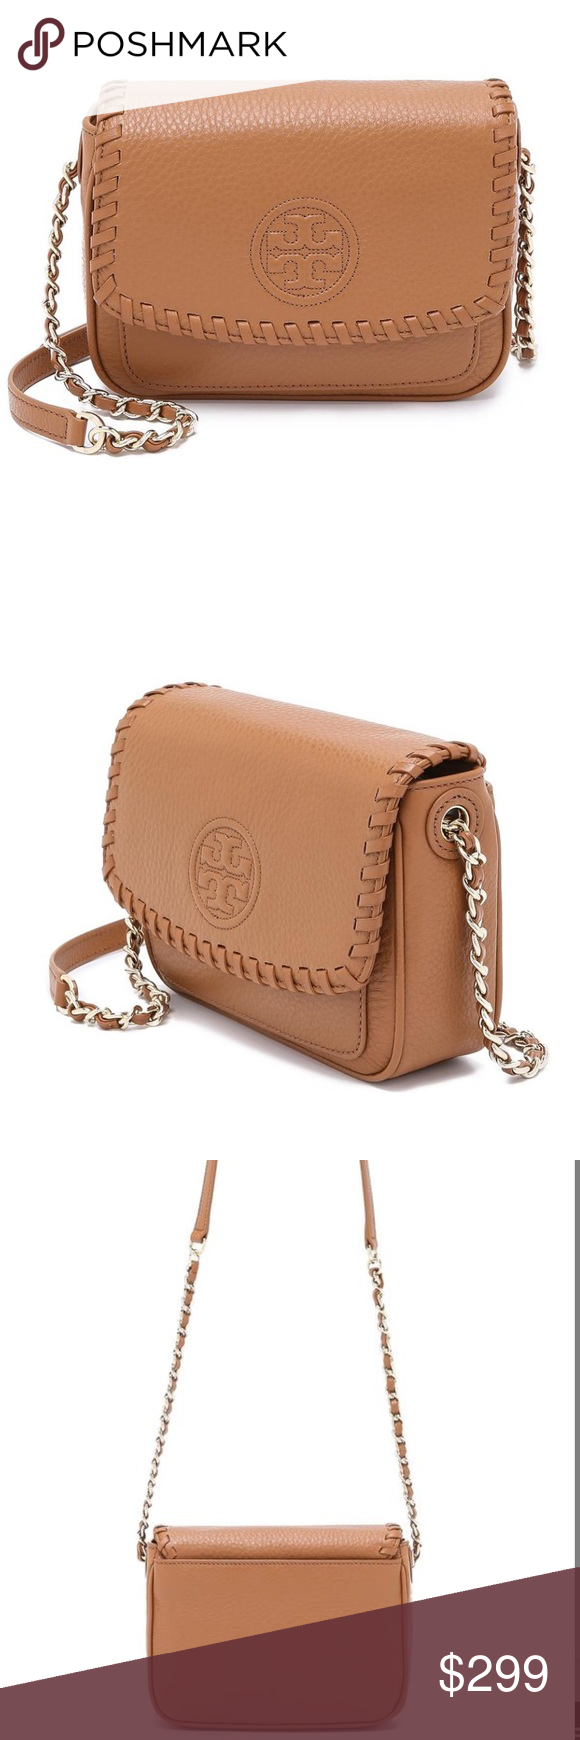 Brand New Tory Burch Crossbody With Tags And Never Used Fleming Convert Medium Bag